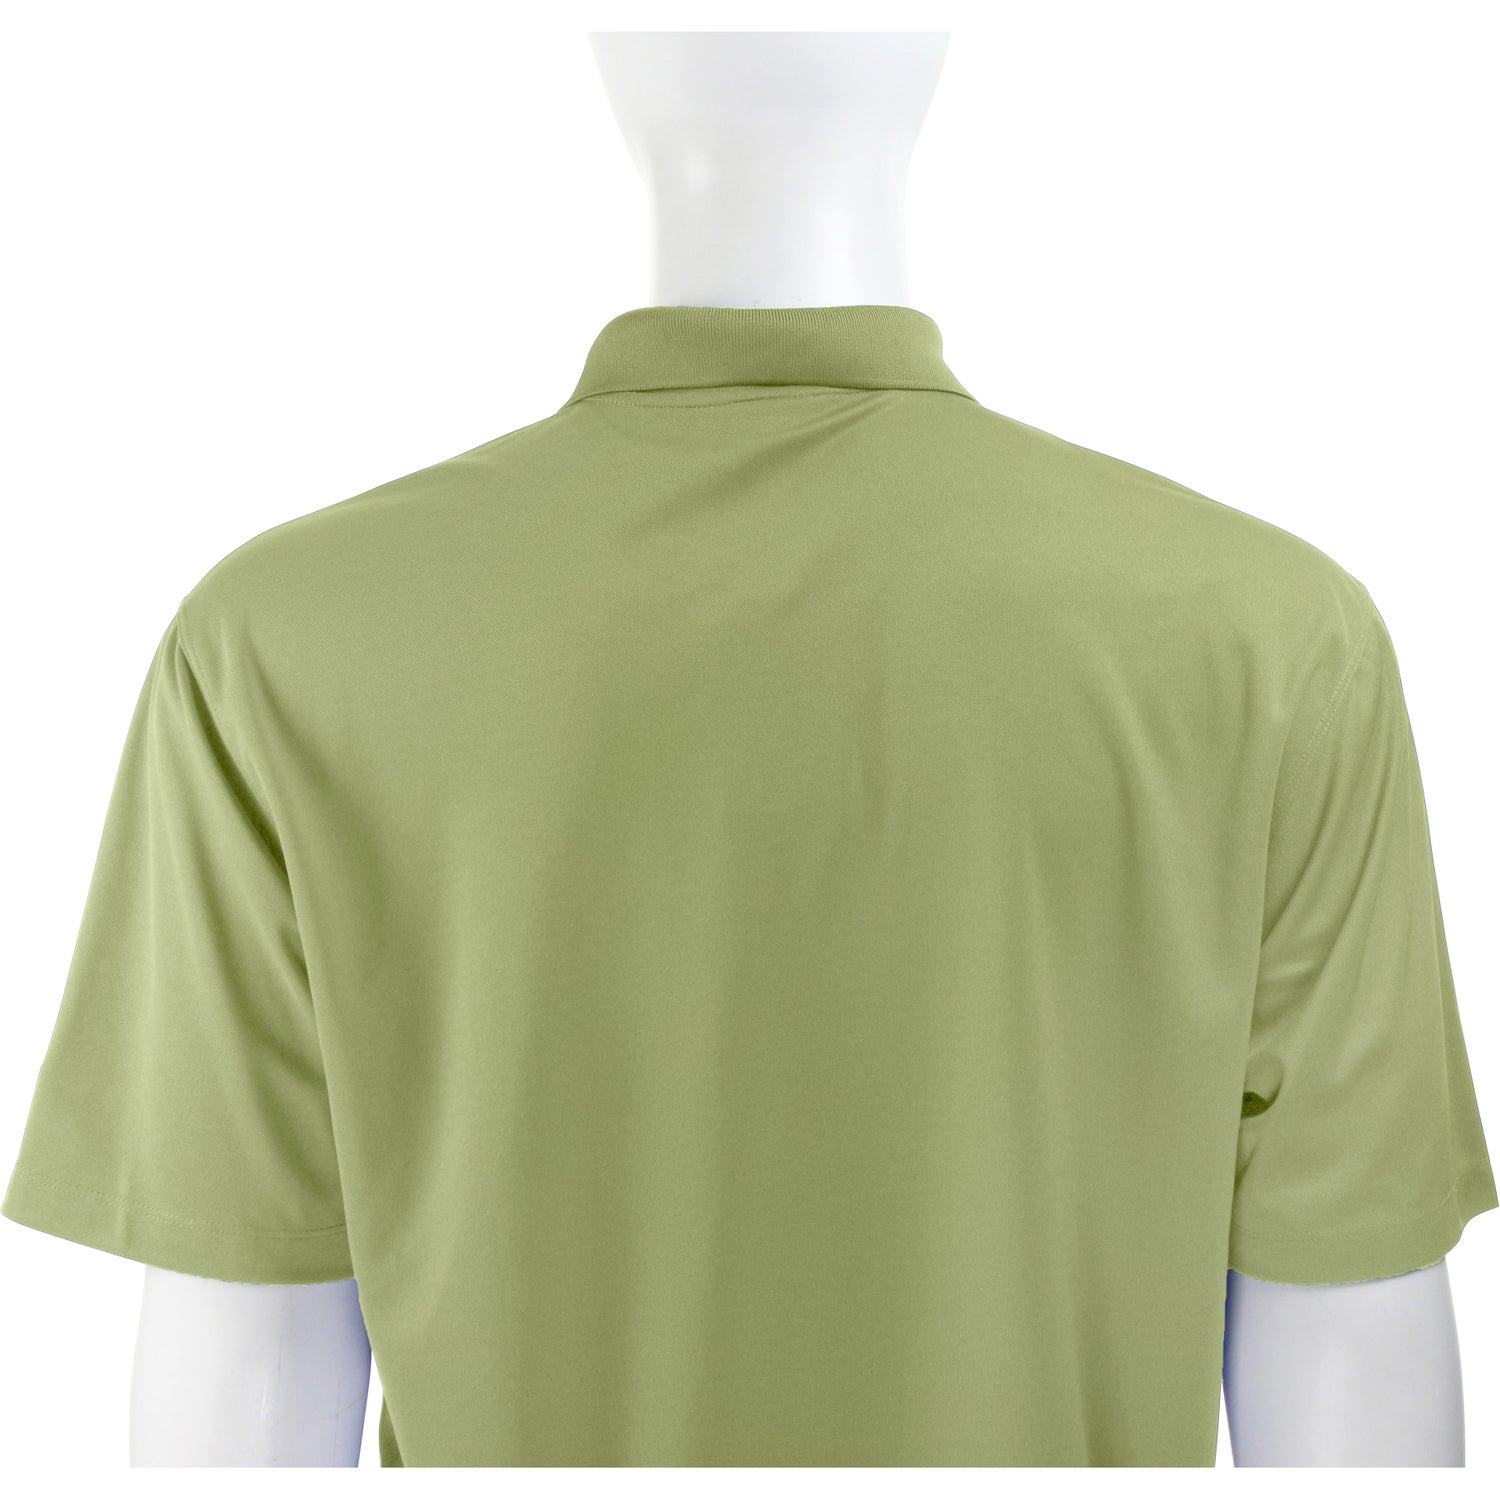 Nike golf dri fit micro pique polo shirt laser engraved for Quality polo shirts with company logo